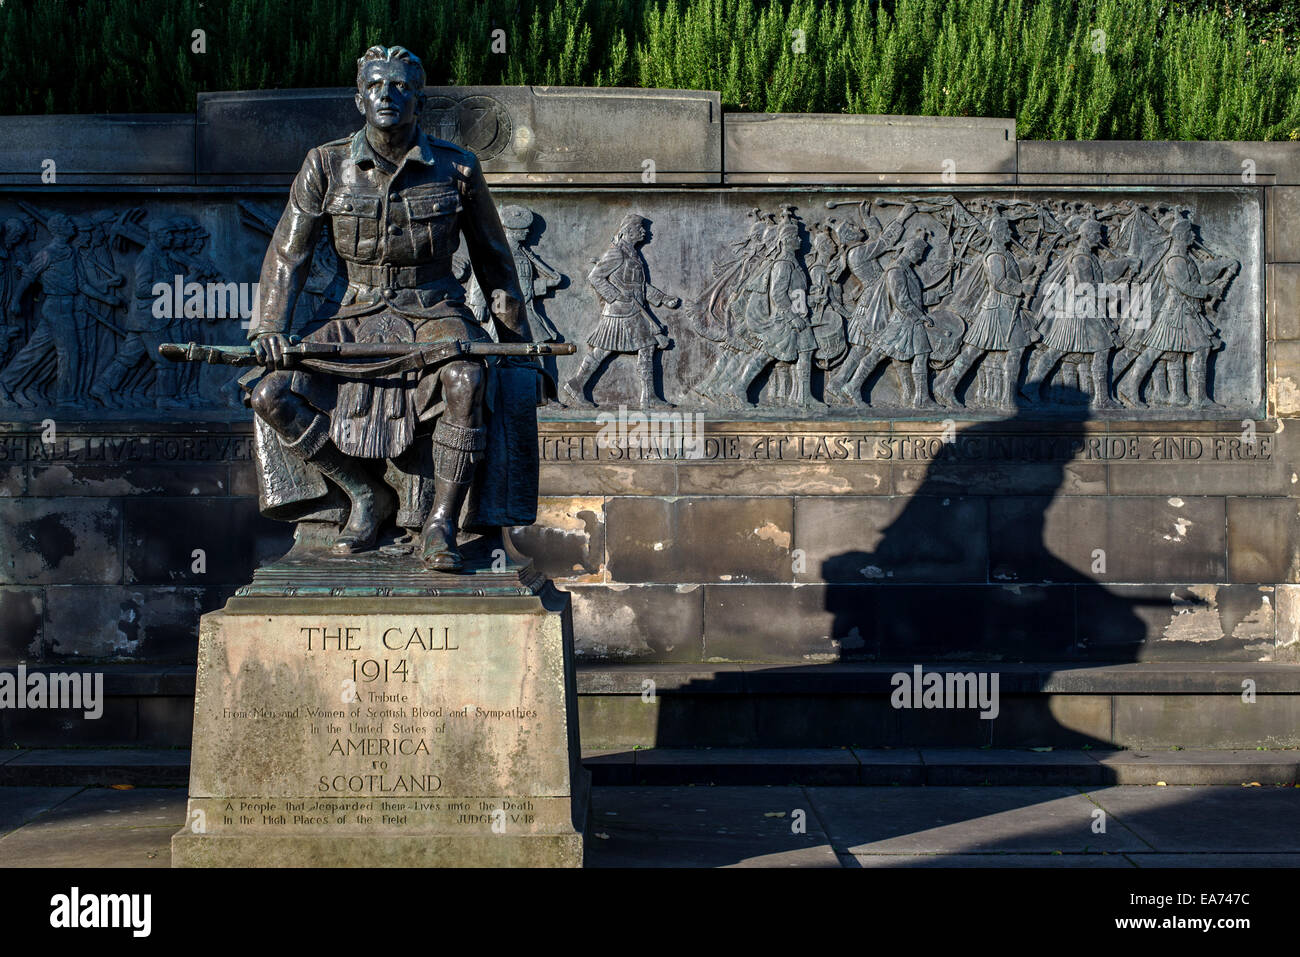 First World War memorial in Princes Street Gardens, Edinburgh the people of the United States of America to Scotland. Stock Photo